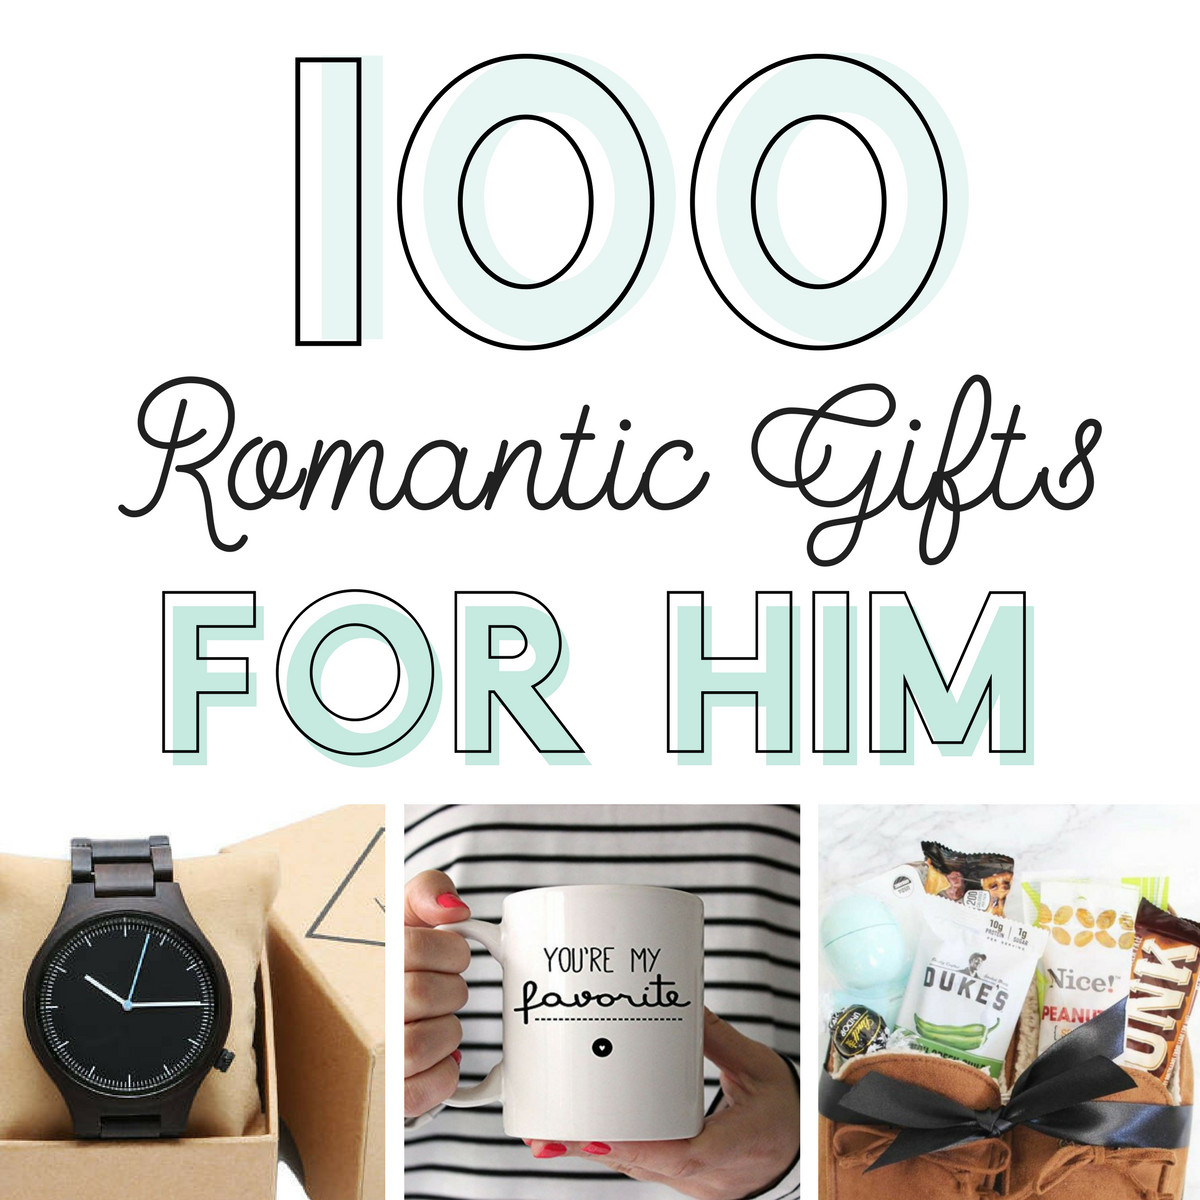 First Christmas Together Gift Ideas For Him  100 Romantic Gifts for Him From The Dating Divas